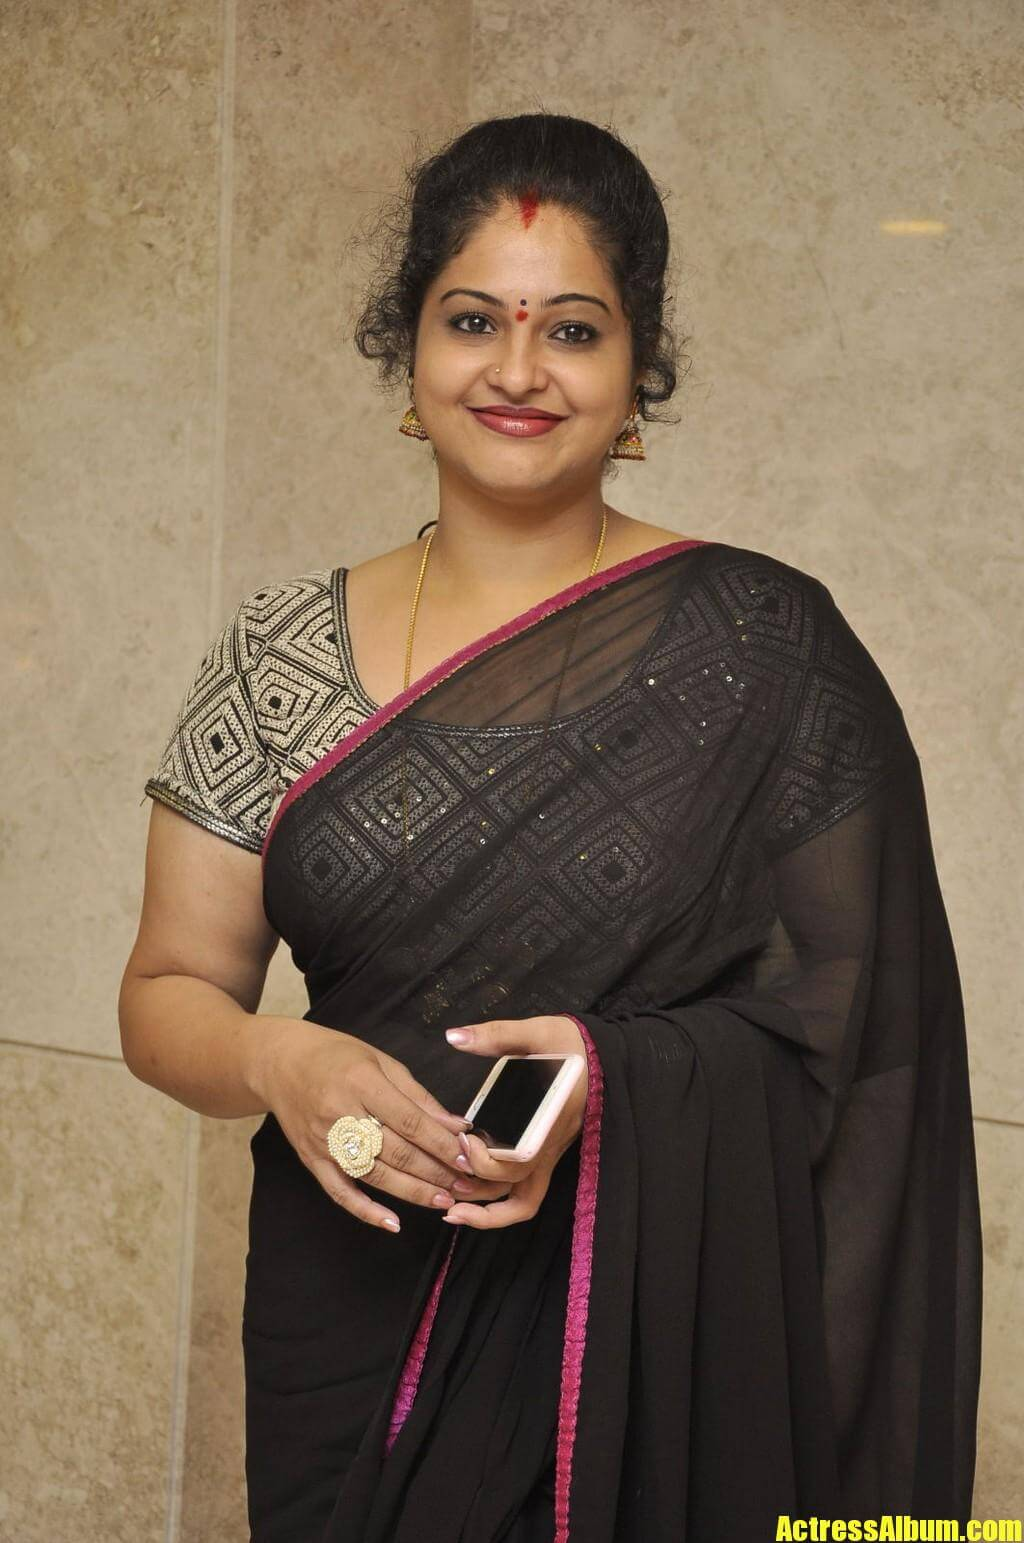 Tollywood Actress Raasi Hot Saree Hd Photos - Actress Album